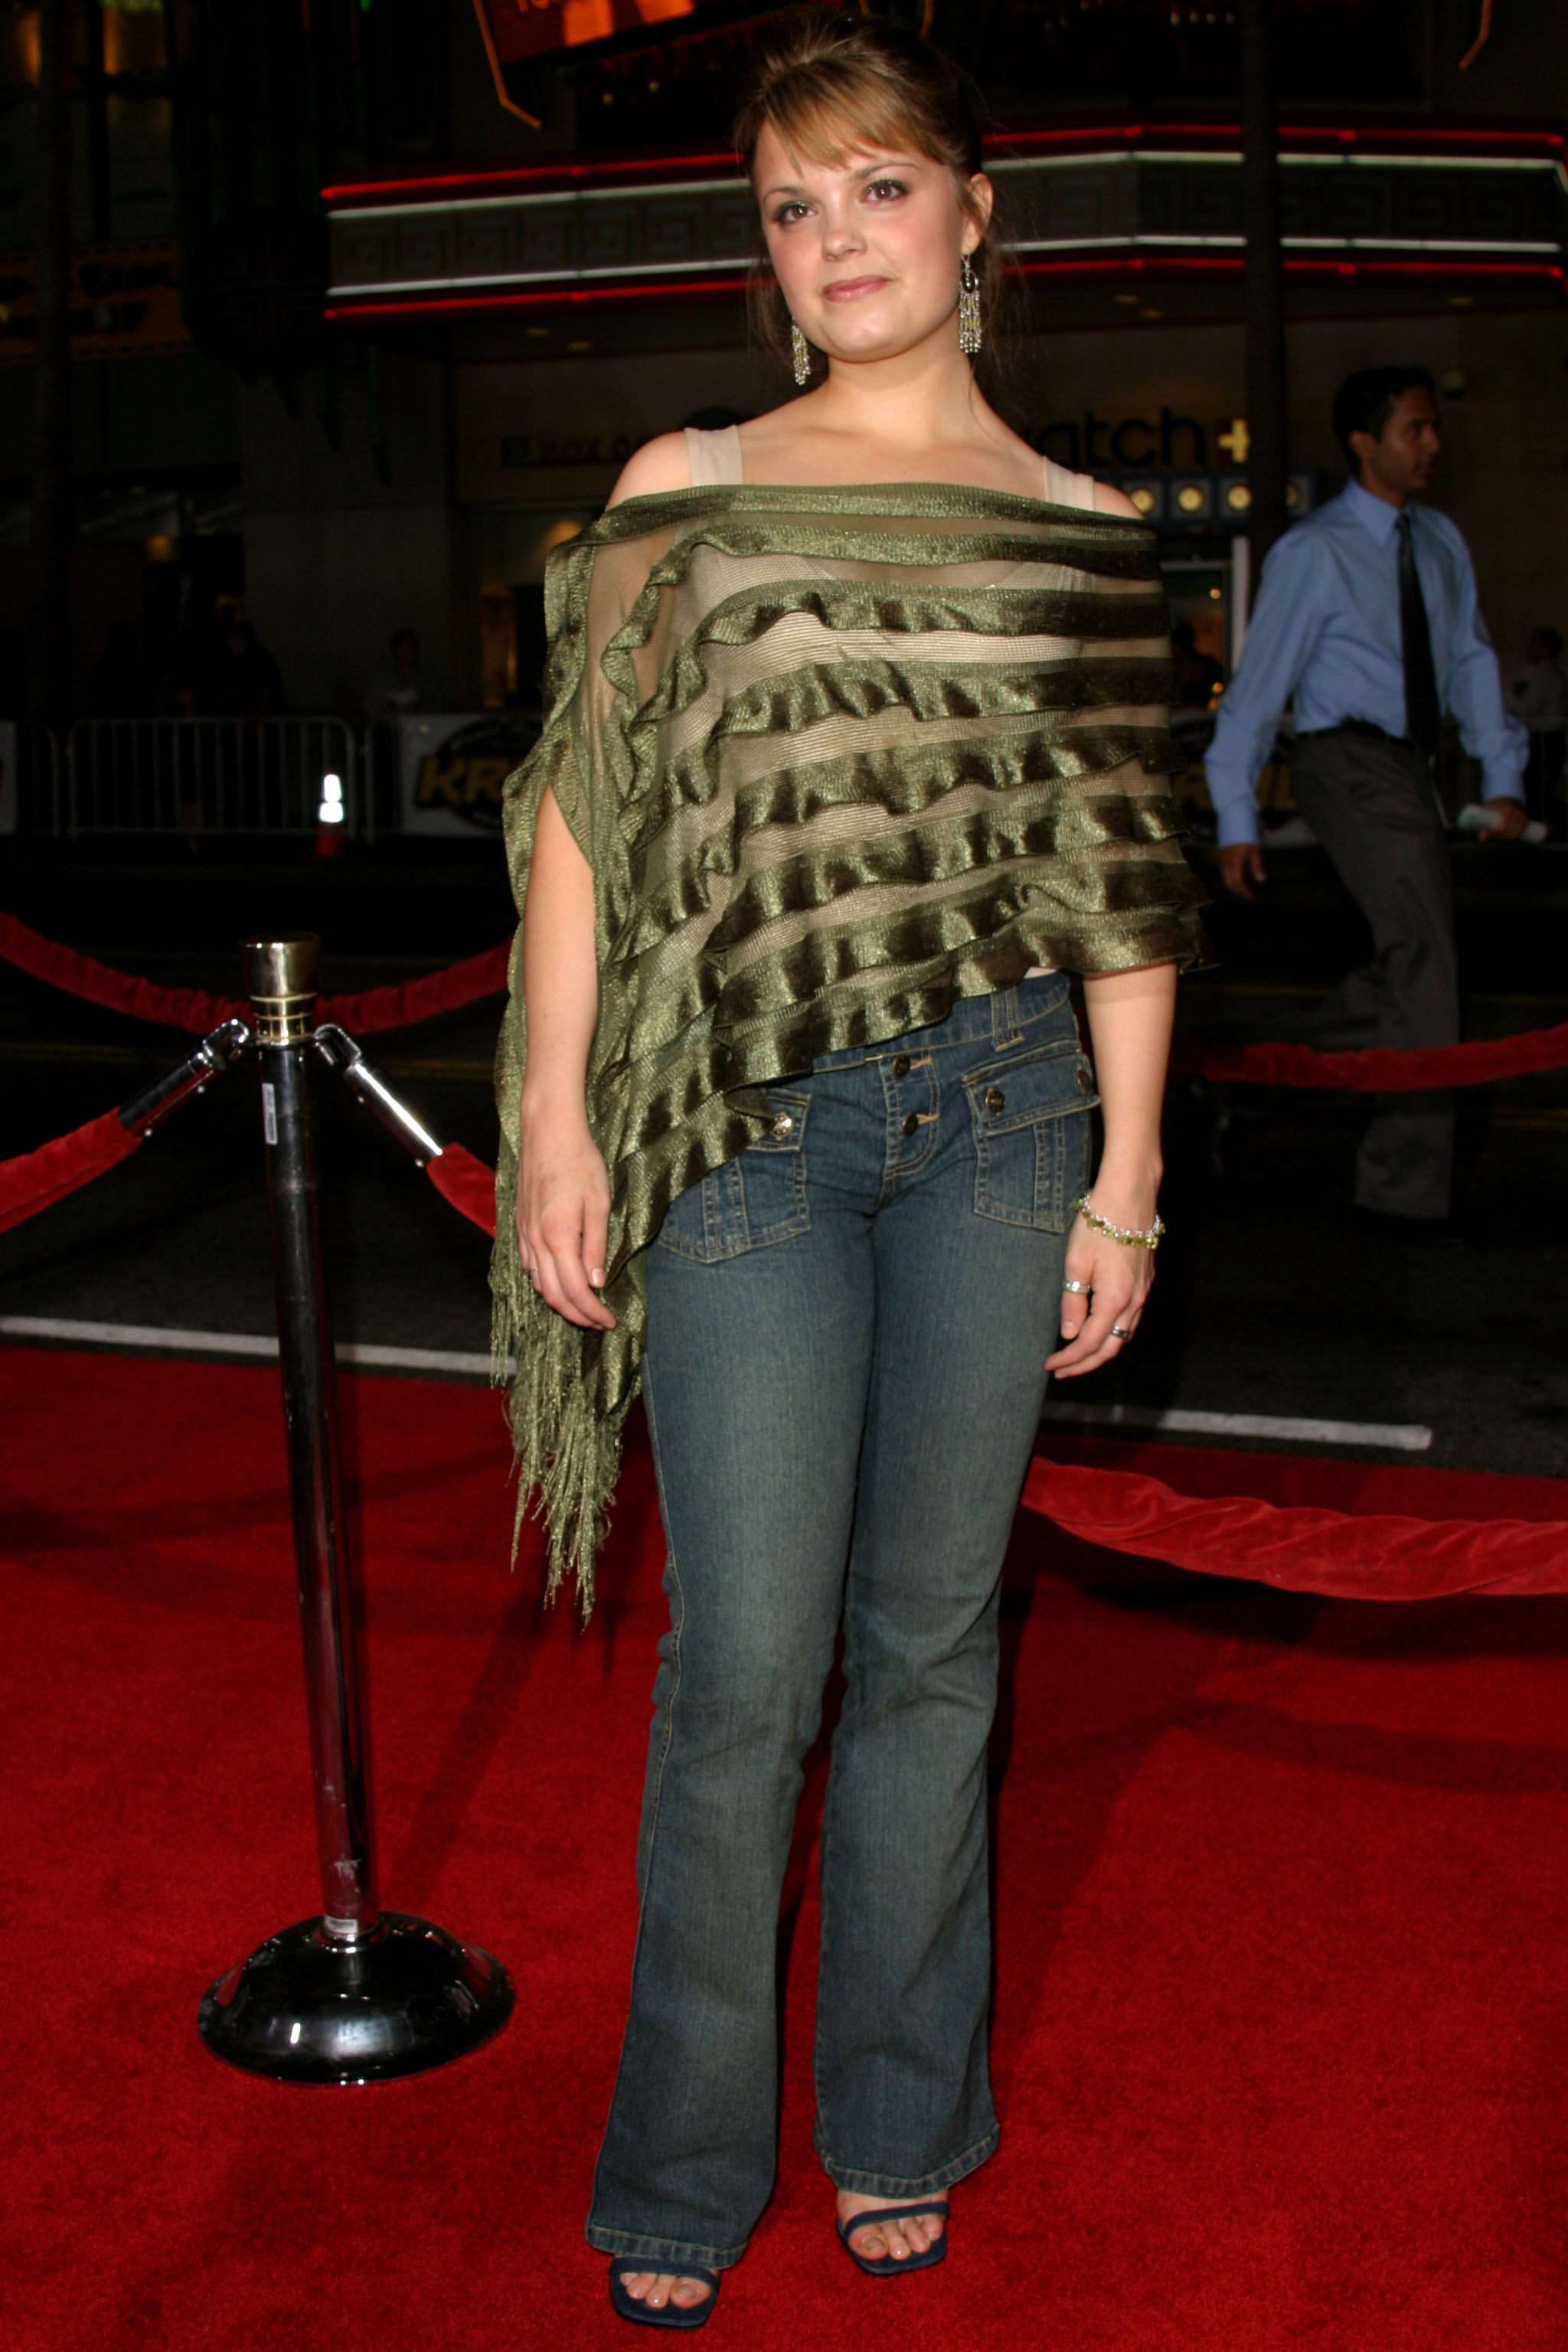 Linda Hamilton Pictures of Kimberly J. Brown - Pictures Of Celebrities